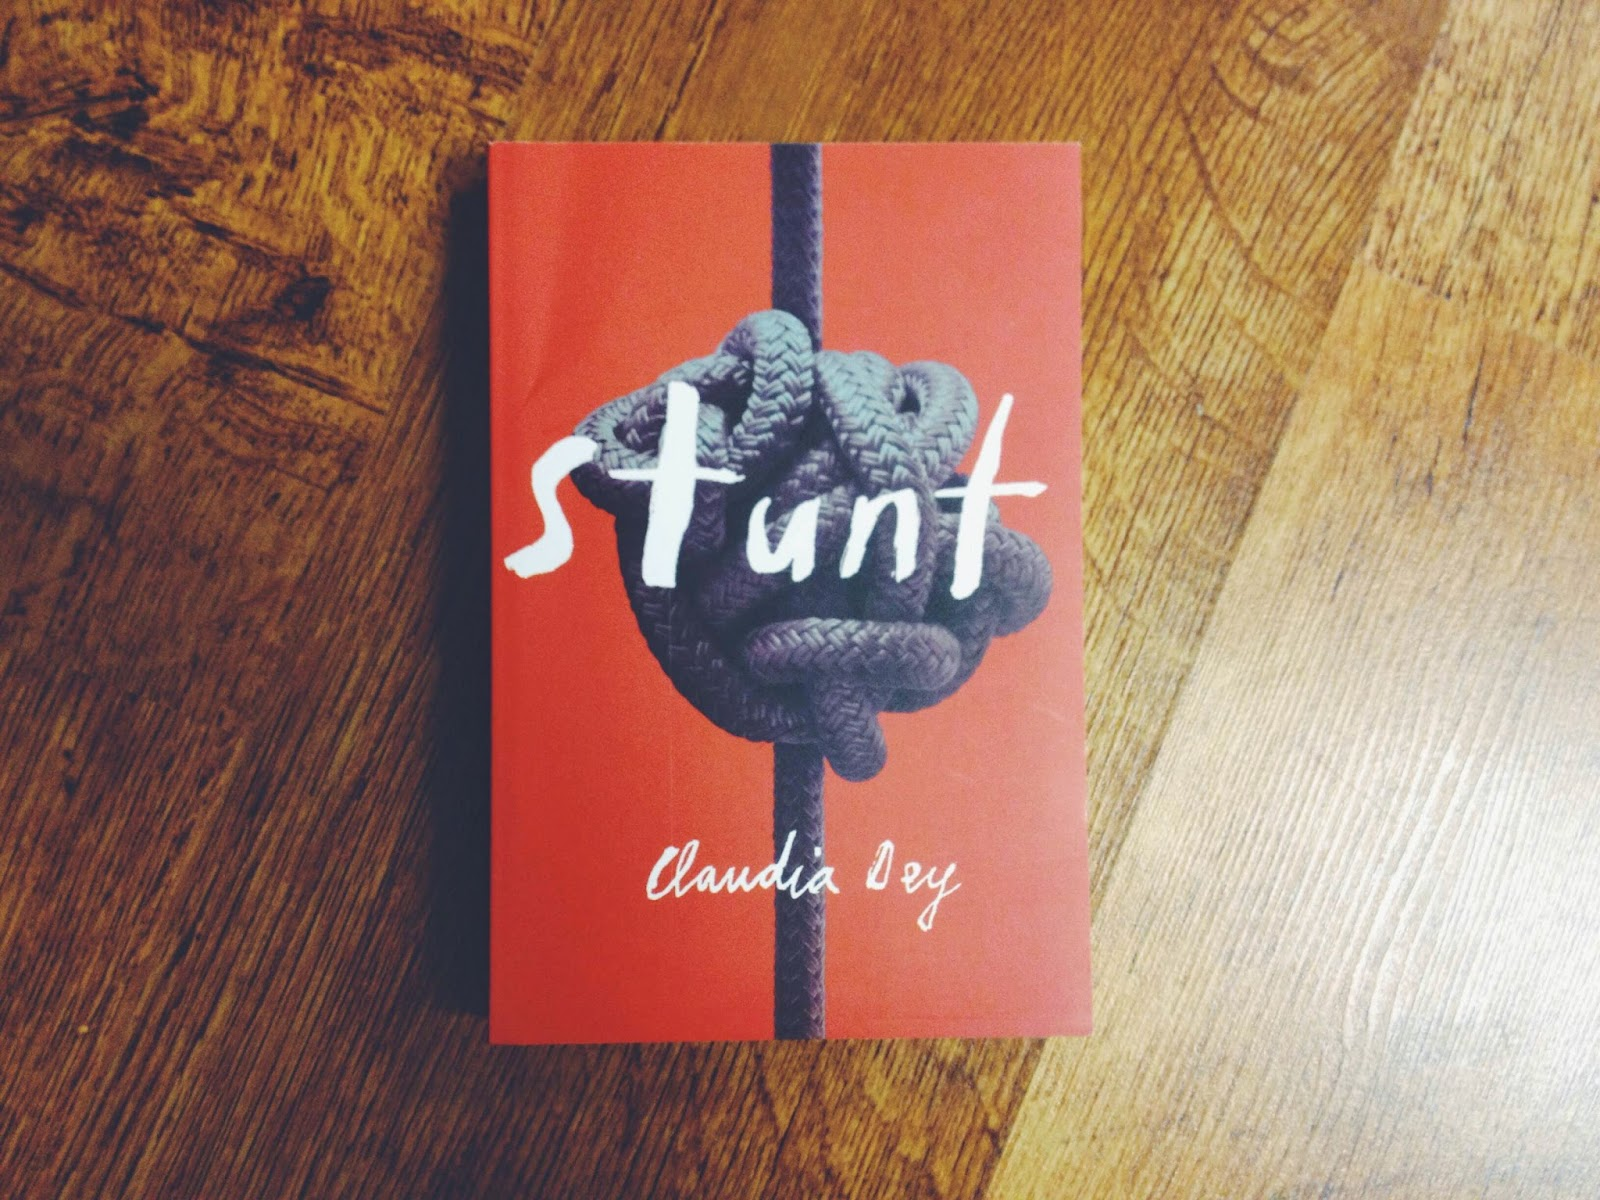 After seeing the cover and reading the first few pages, I can't wait to read Stunt by Claudia Dey, a Toronto-based writer. Cover design by  Jason Logan .